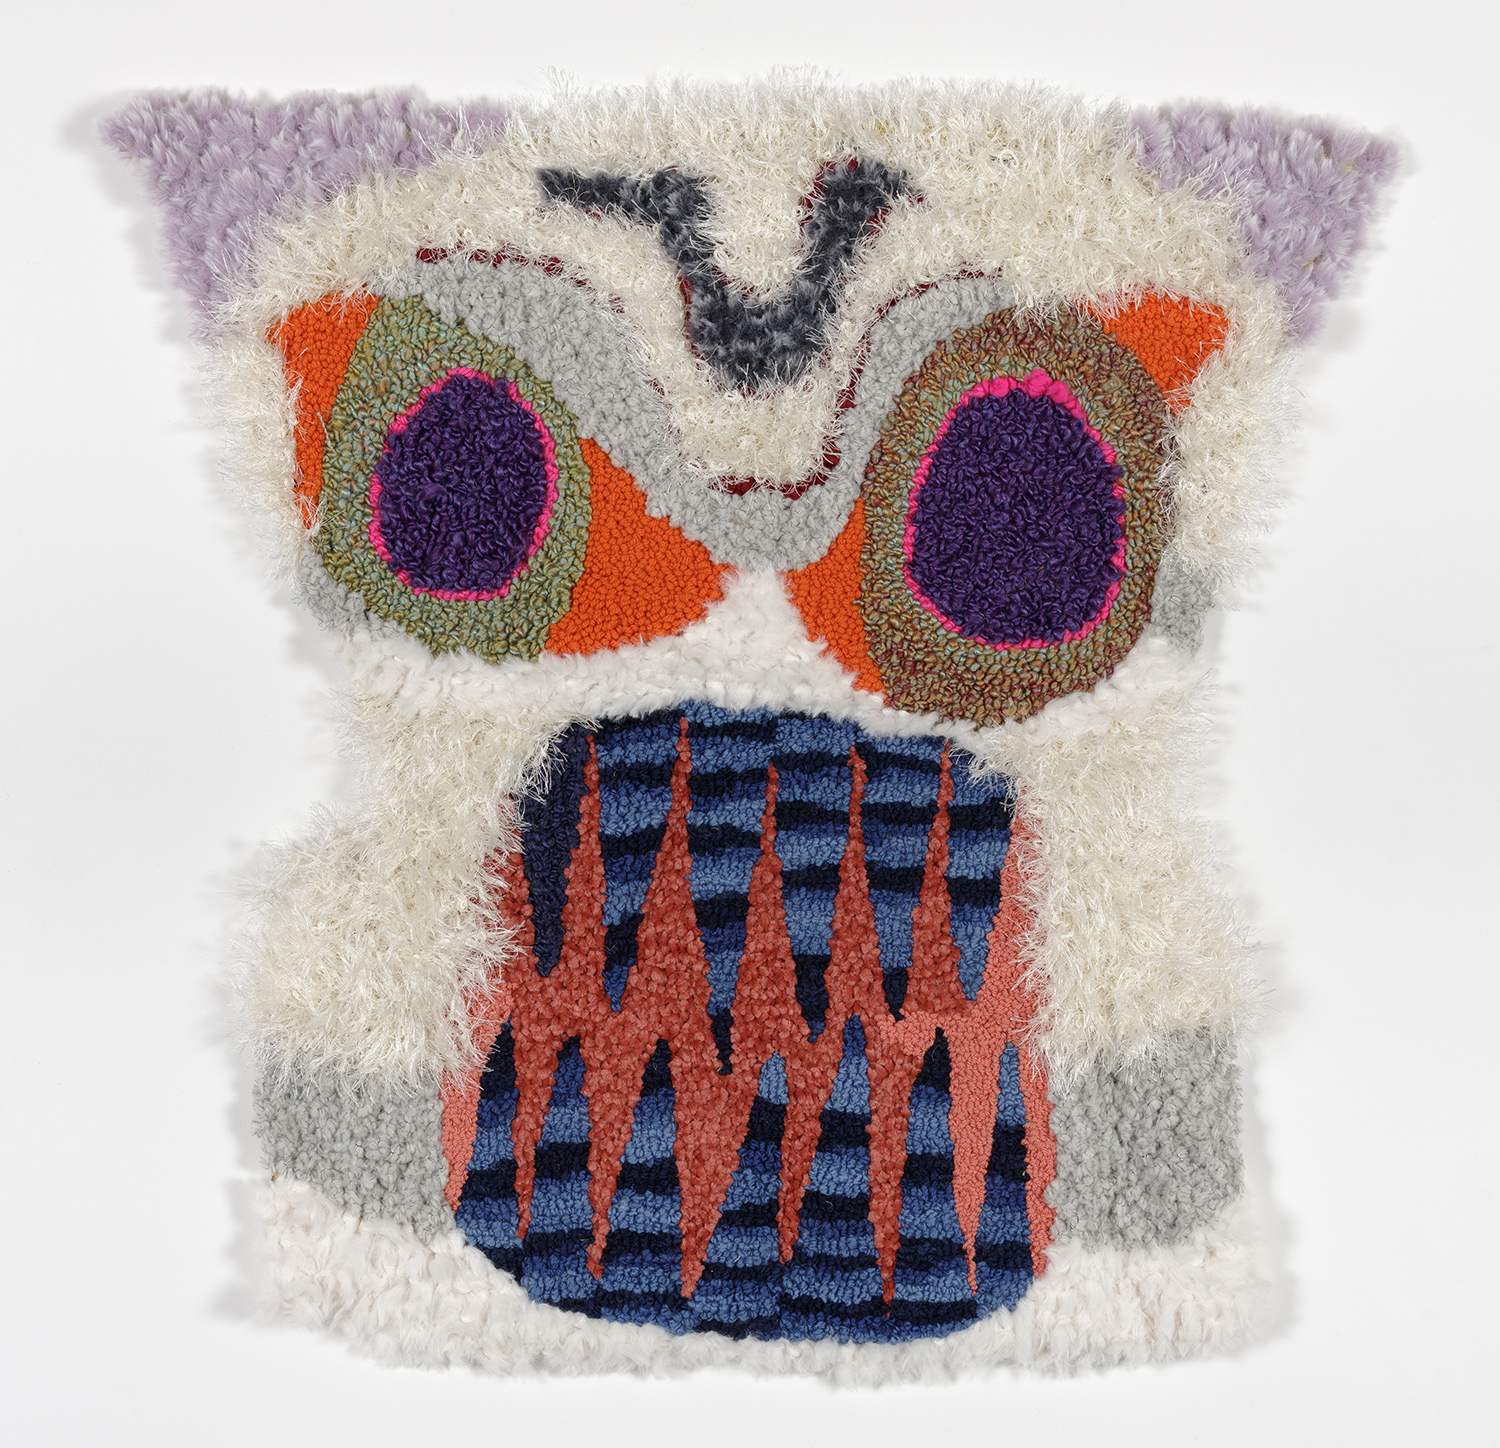 Hannah Epstein. <em>Tiki Totem</em>, 2019. Wool, acrylic, polyester and burlap, 30 x 30 inches  (76.2 x 76.2 cm)